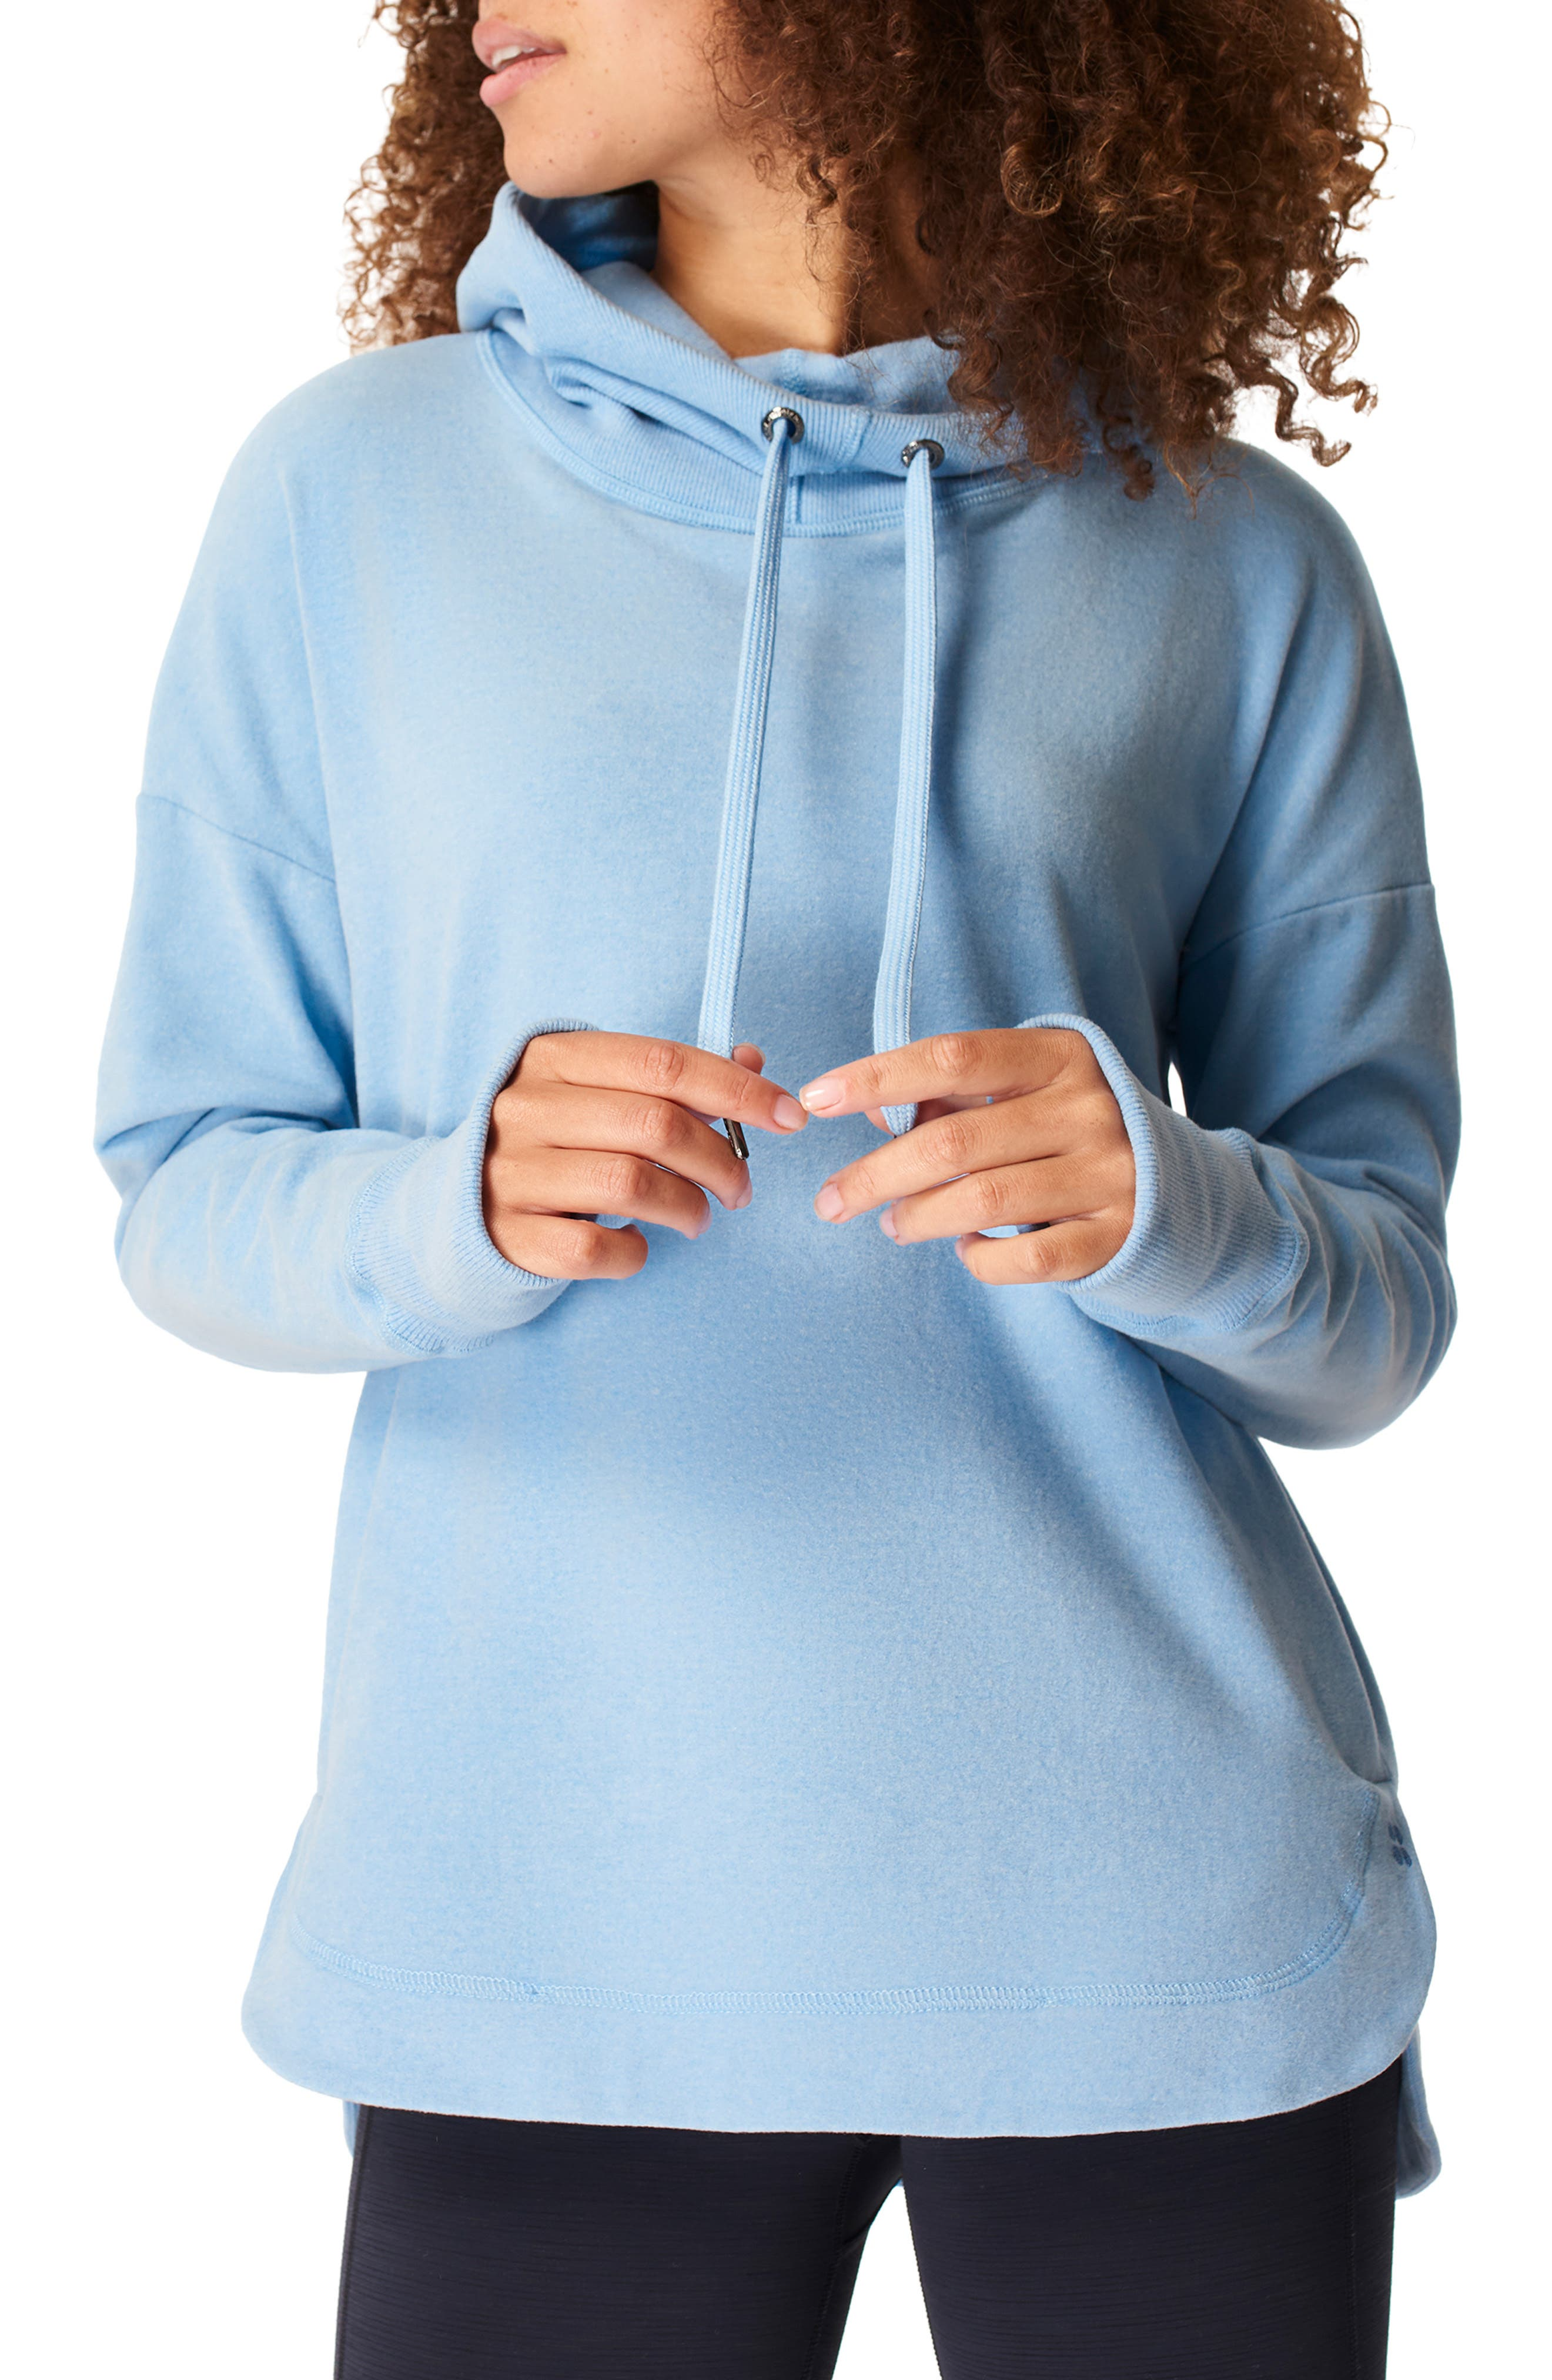 A curved hem and loose-fitting profile gives this luxe fleece hoodie a look perfect for your post-workout lounging hours. Style Name: Sweatty Betty Escape Fleece Hoodie. Style Number: 6092084. Available in stores.